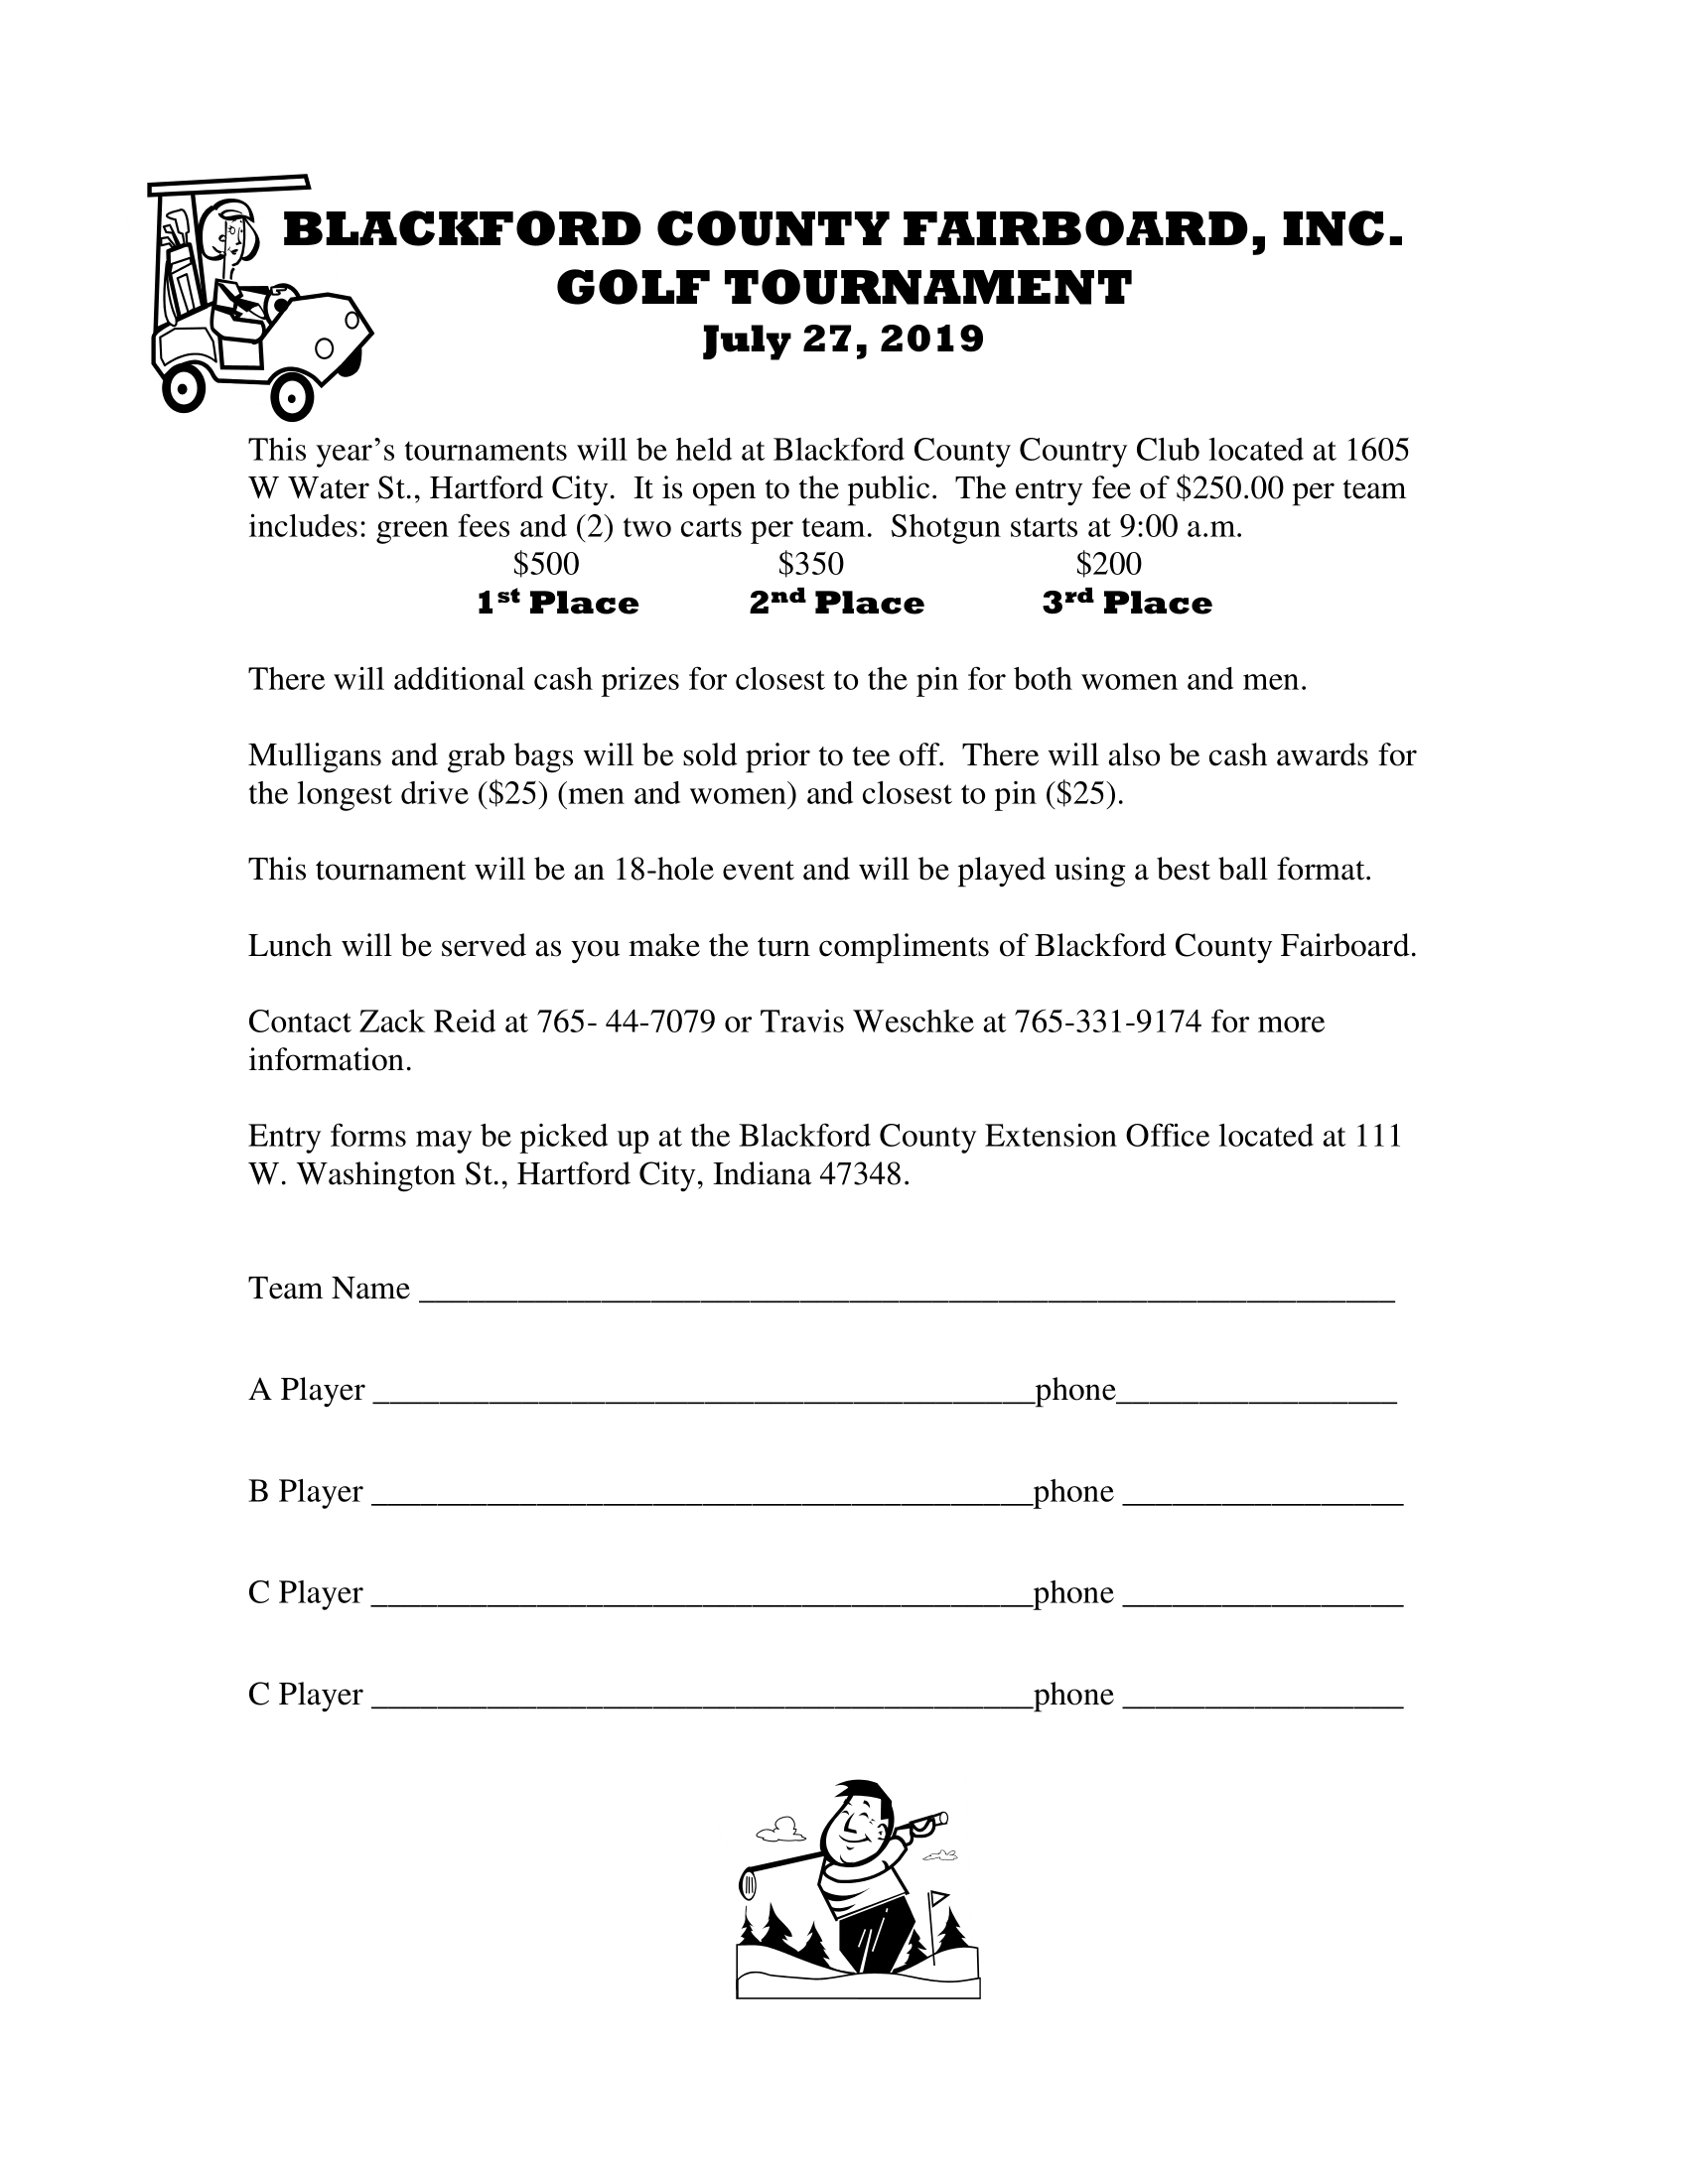 Fairboard Golf Outing-1.png